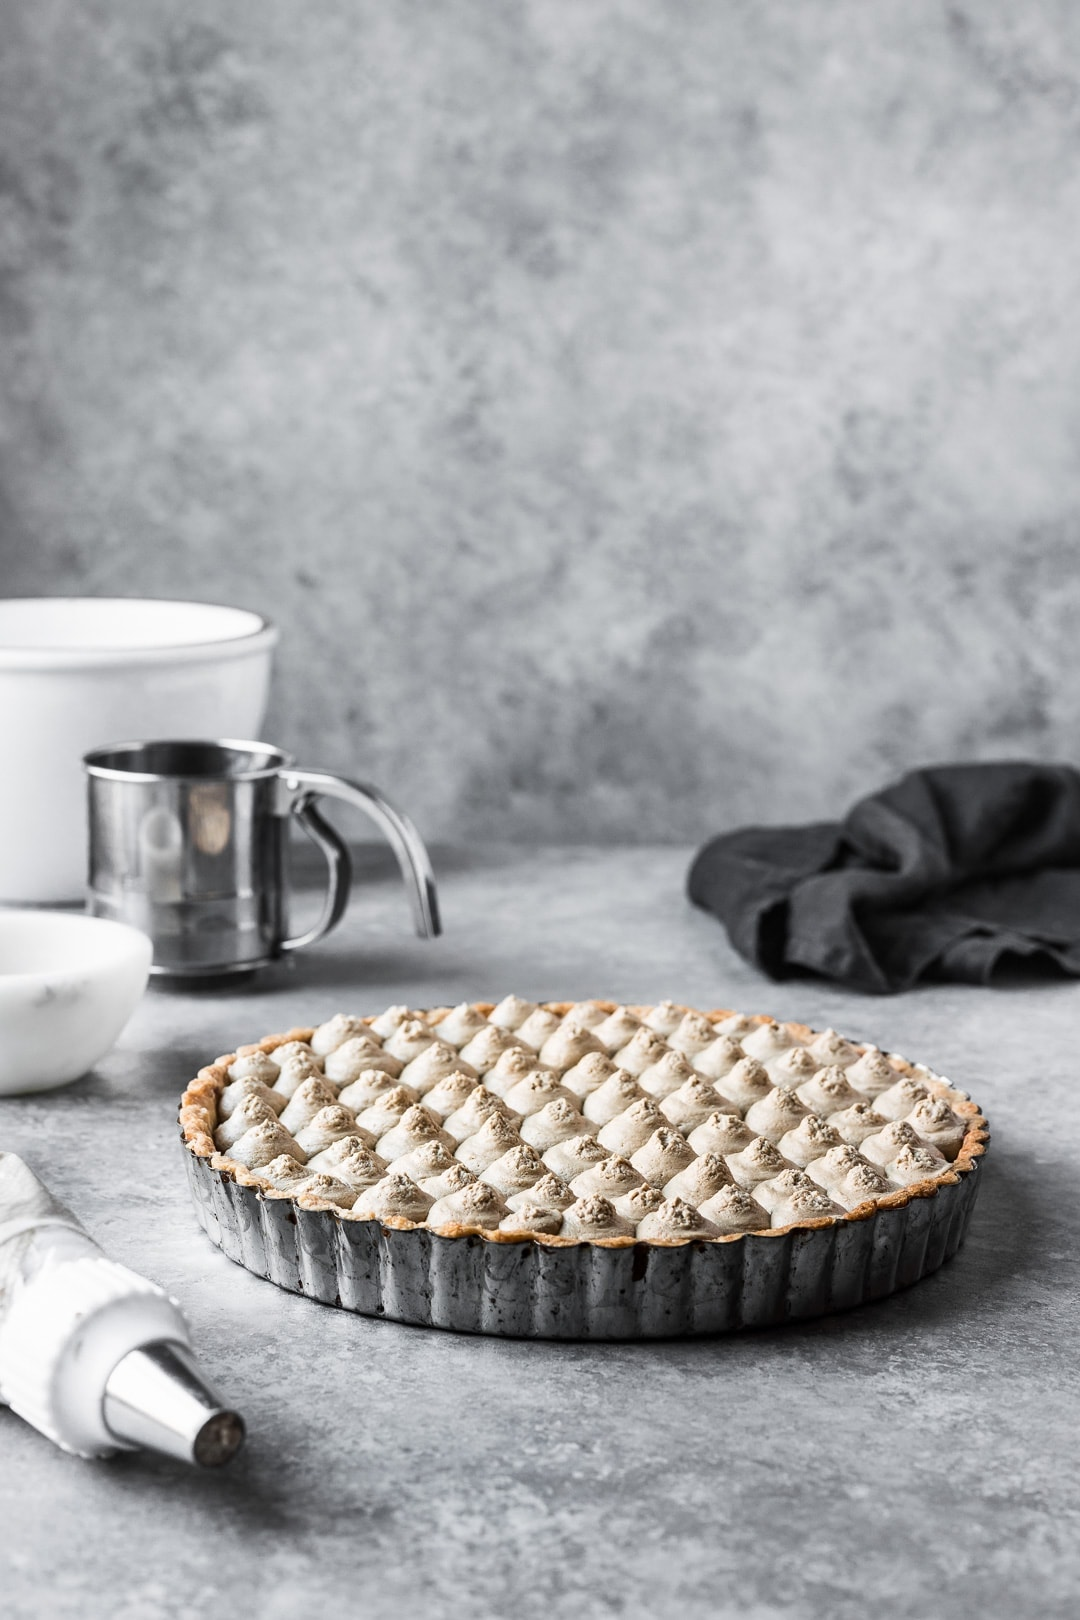 Tart resting on a grey background with bowls and piping bag nearby